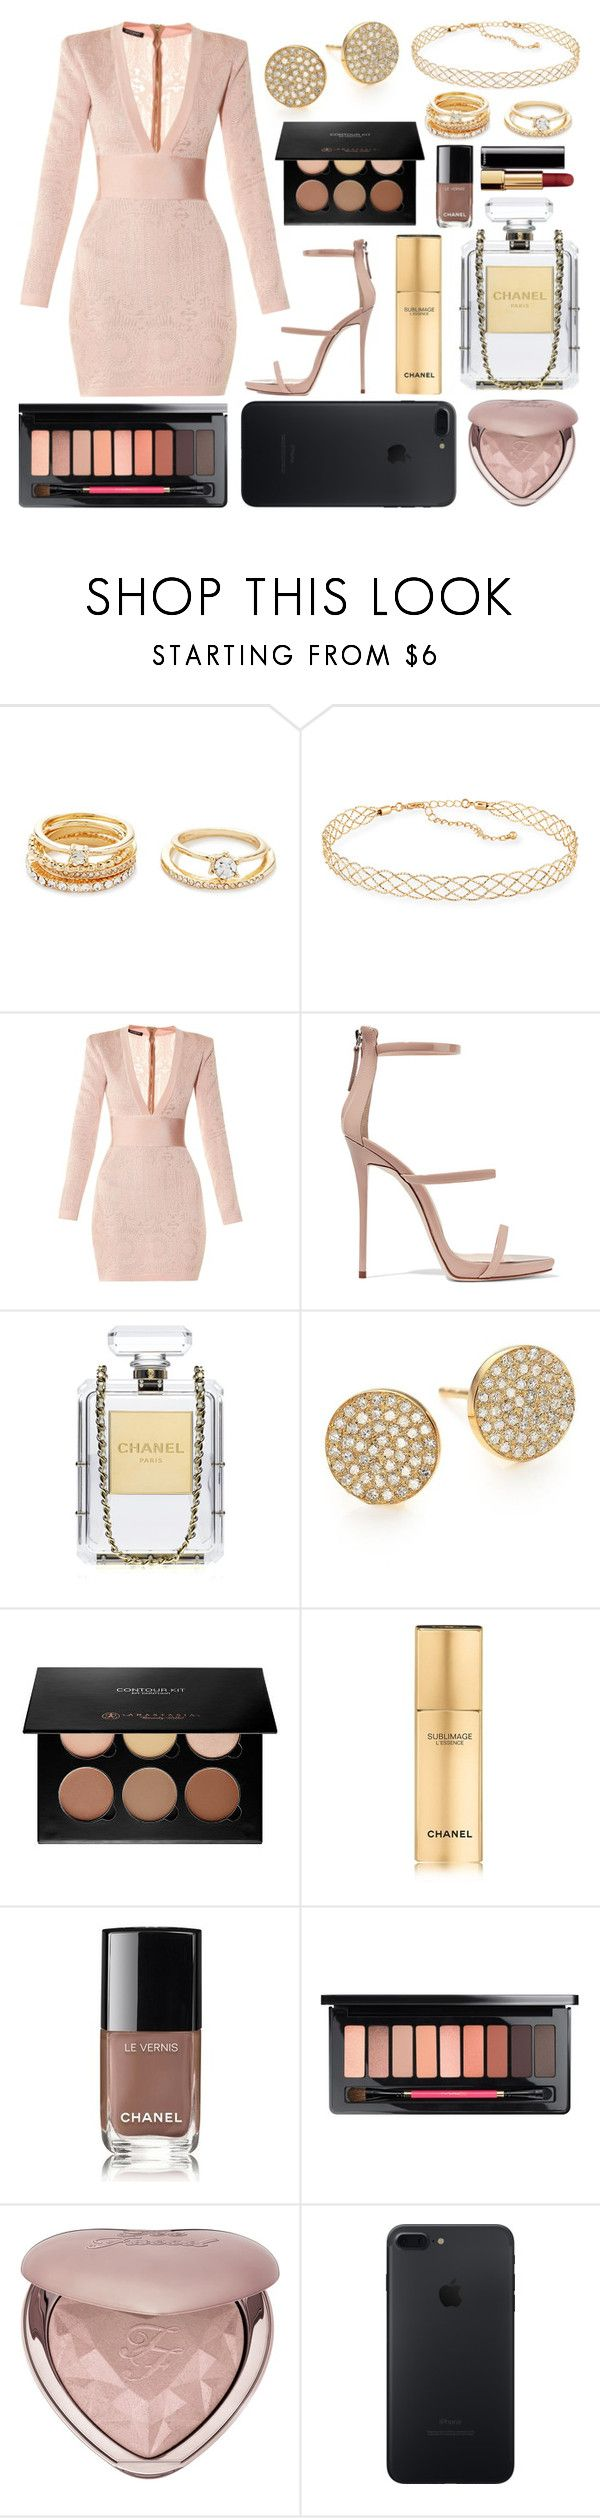 """248."" by plaraa on Polyvore featuring moda, Forever 21, Panacea, Balmain, Giuseppe Zanotti, Chanel, EF Collection, Anastasia Beverly Hills y Too Faced Cosmetics"